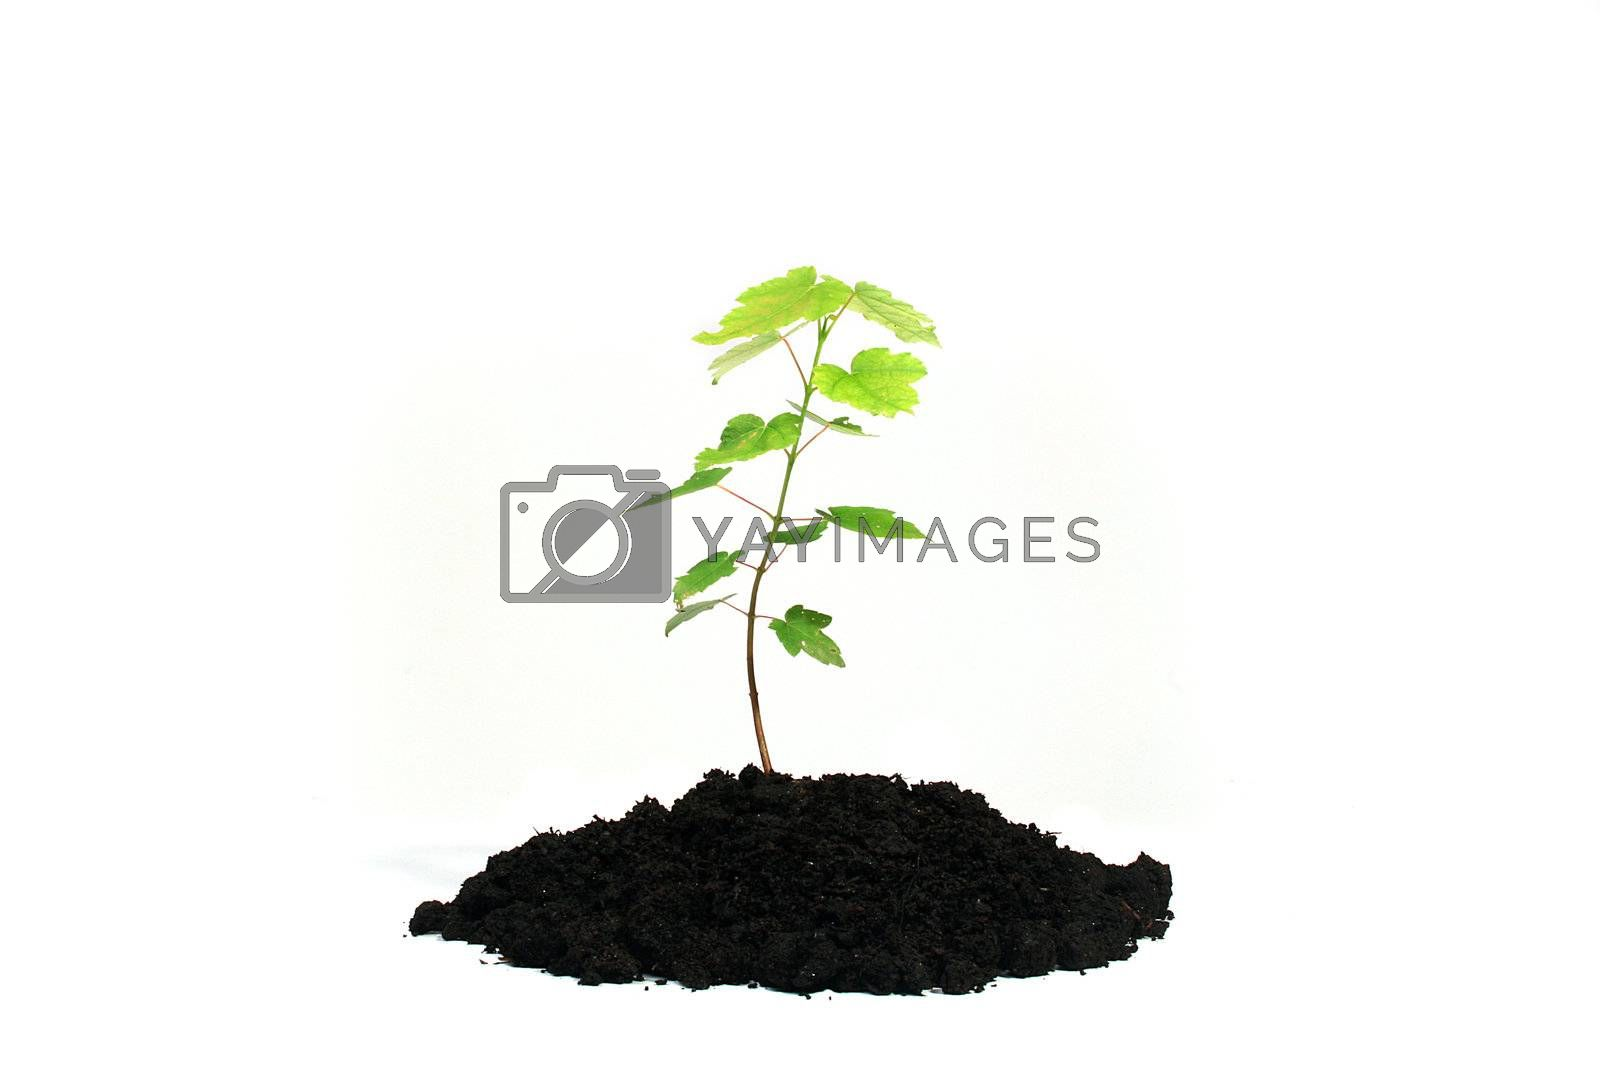 Tree sapling in the earth on a white background.